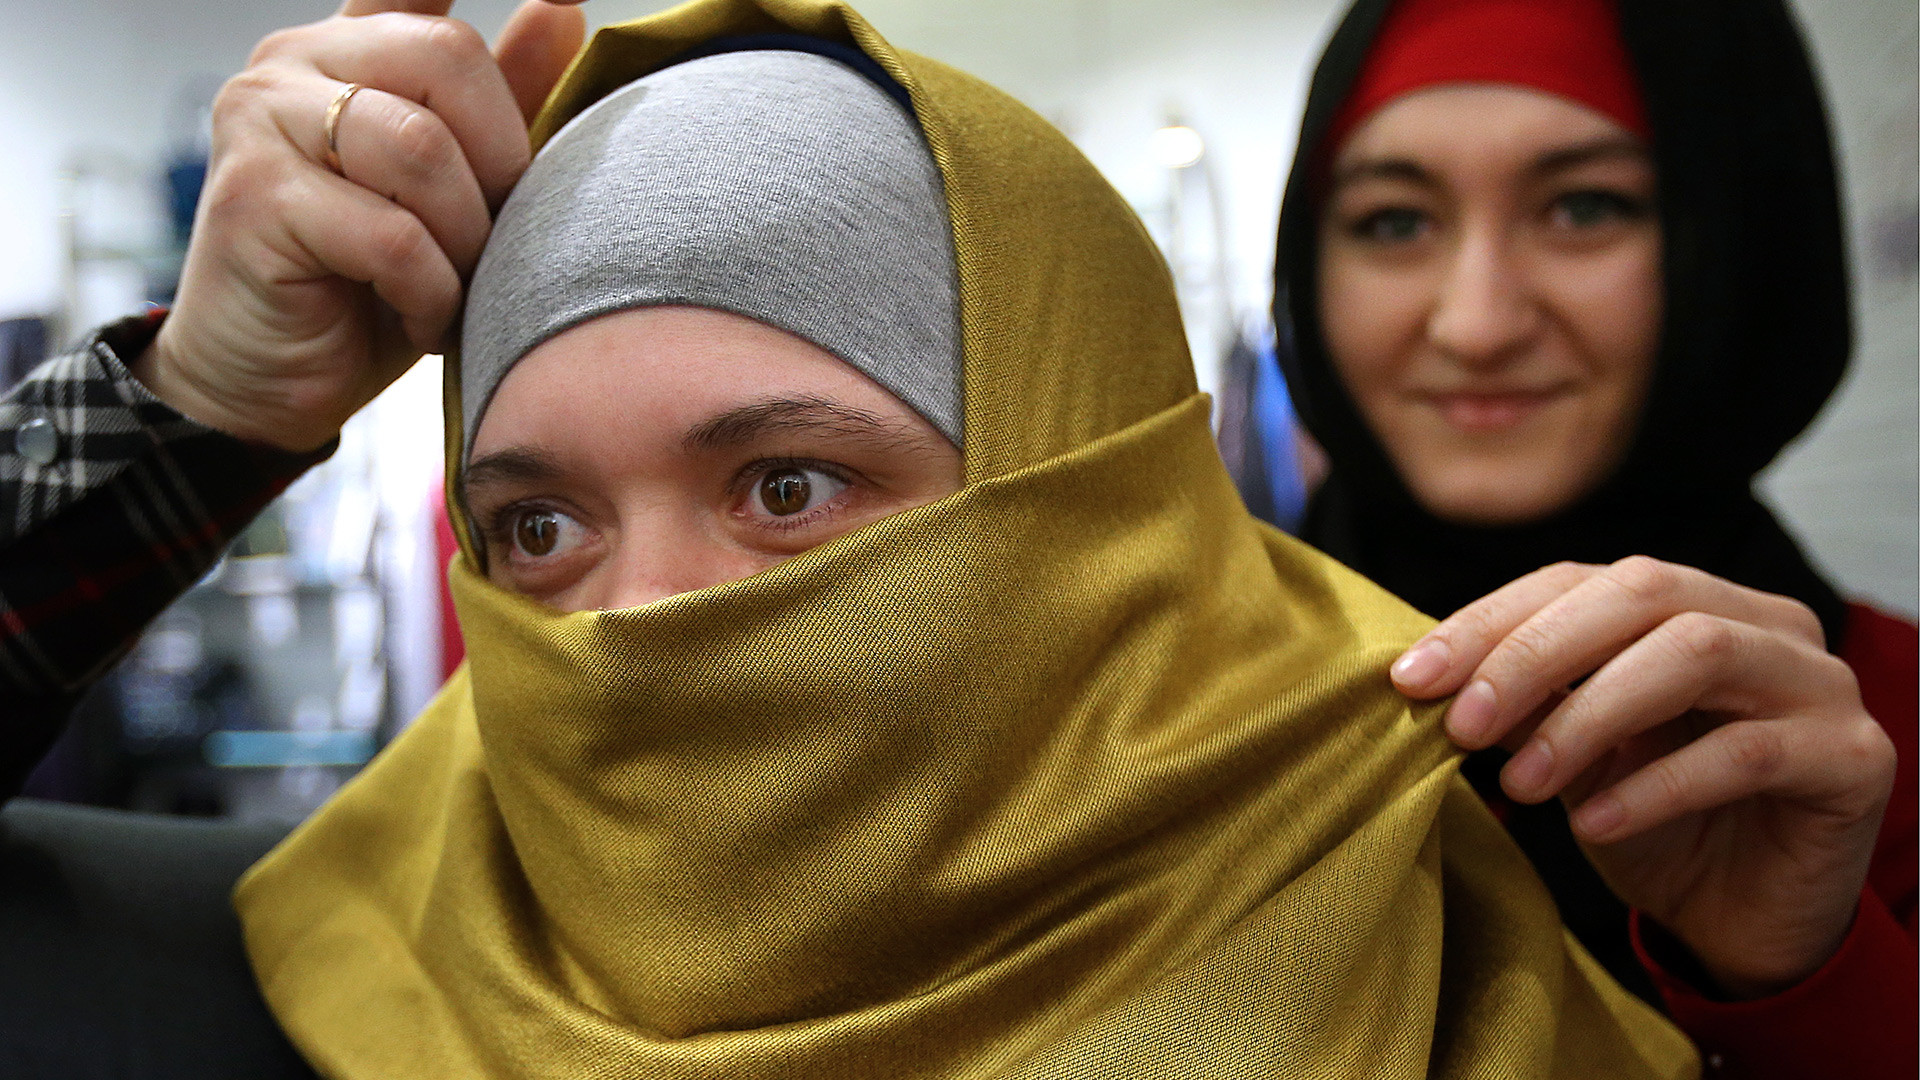 A woman chooses a hijab in a Moscow shopping center.